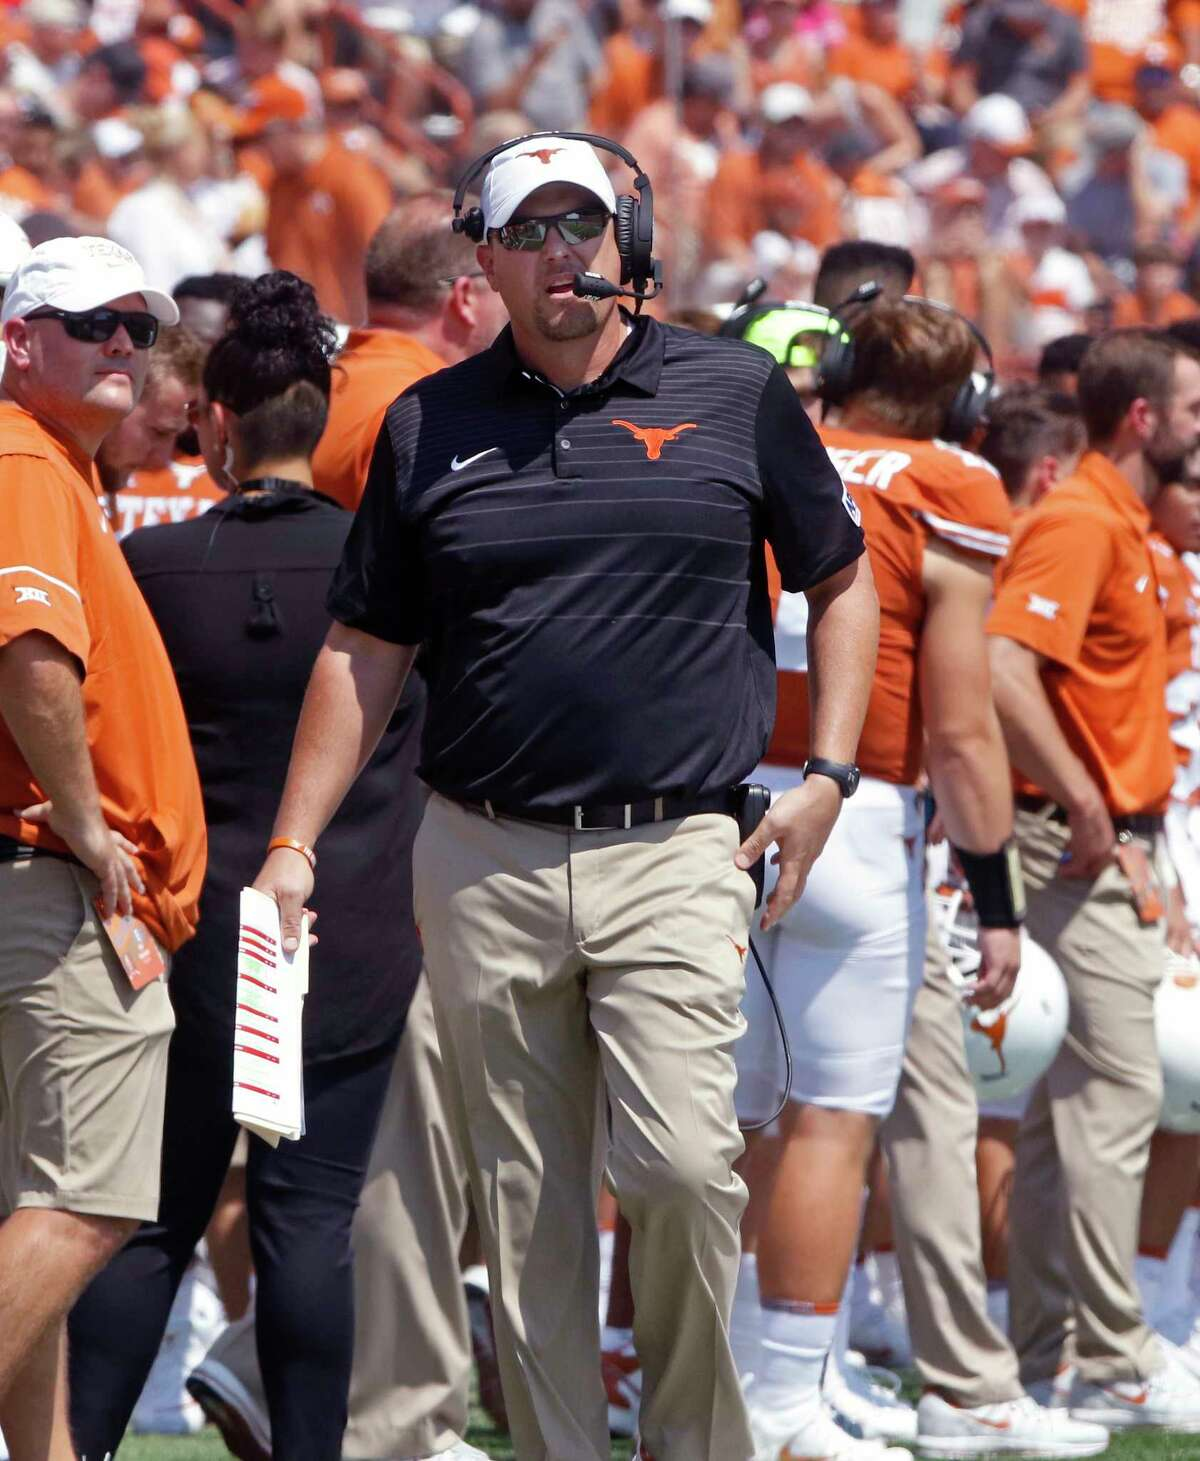 Texas head coach Tom Herman, center, looks at the scoreboard during the first half of an NCAA college football game against Maryland, Saturday, Sept. 2, 2017, in Austin, Texas. Maryland won 51-41. (AP Photo/Michael Thomas)